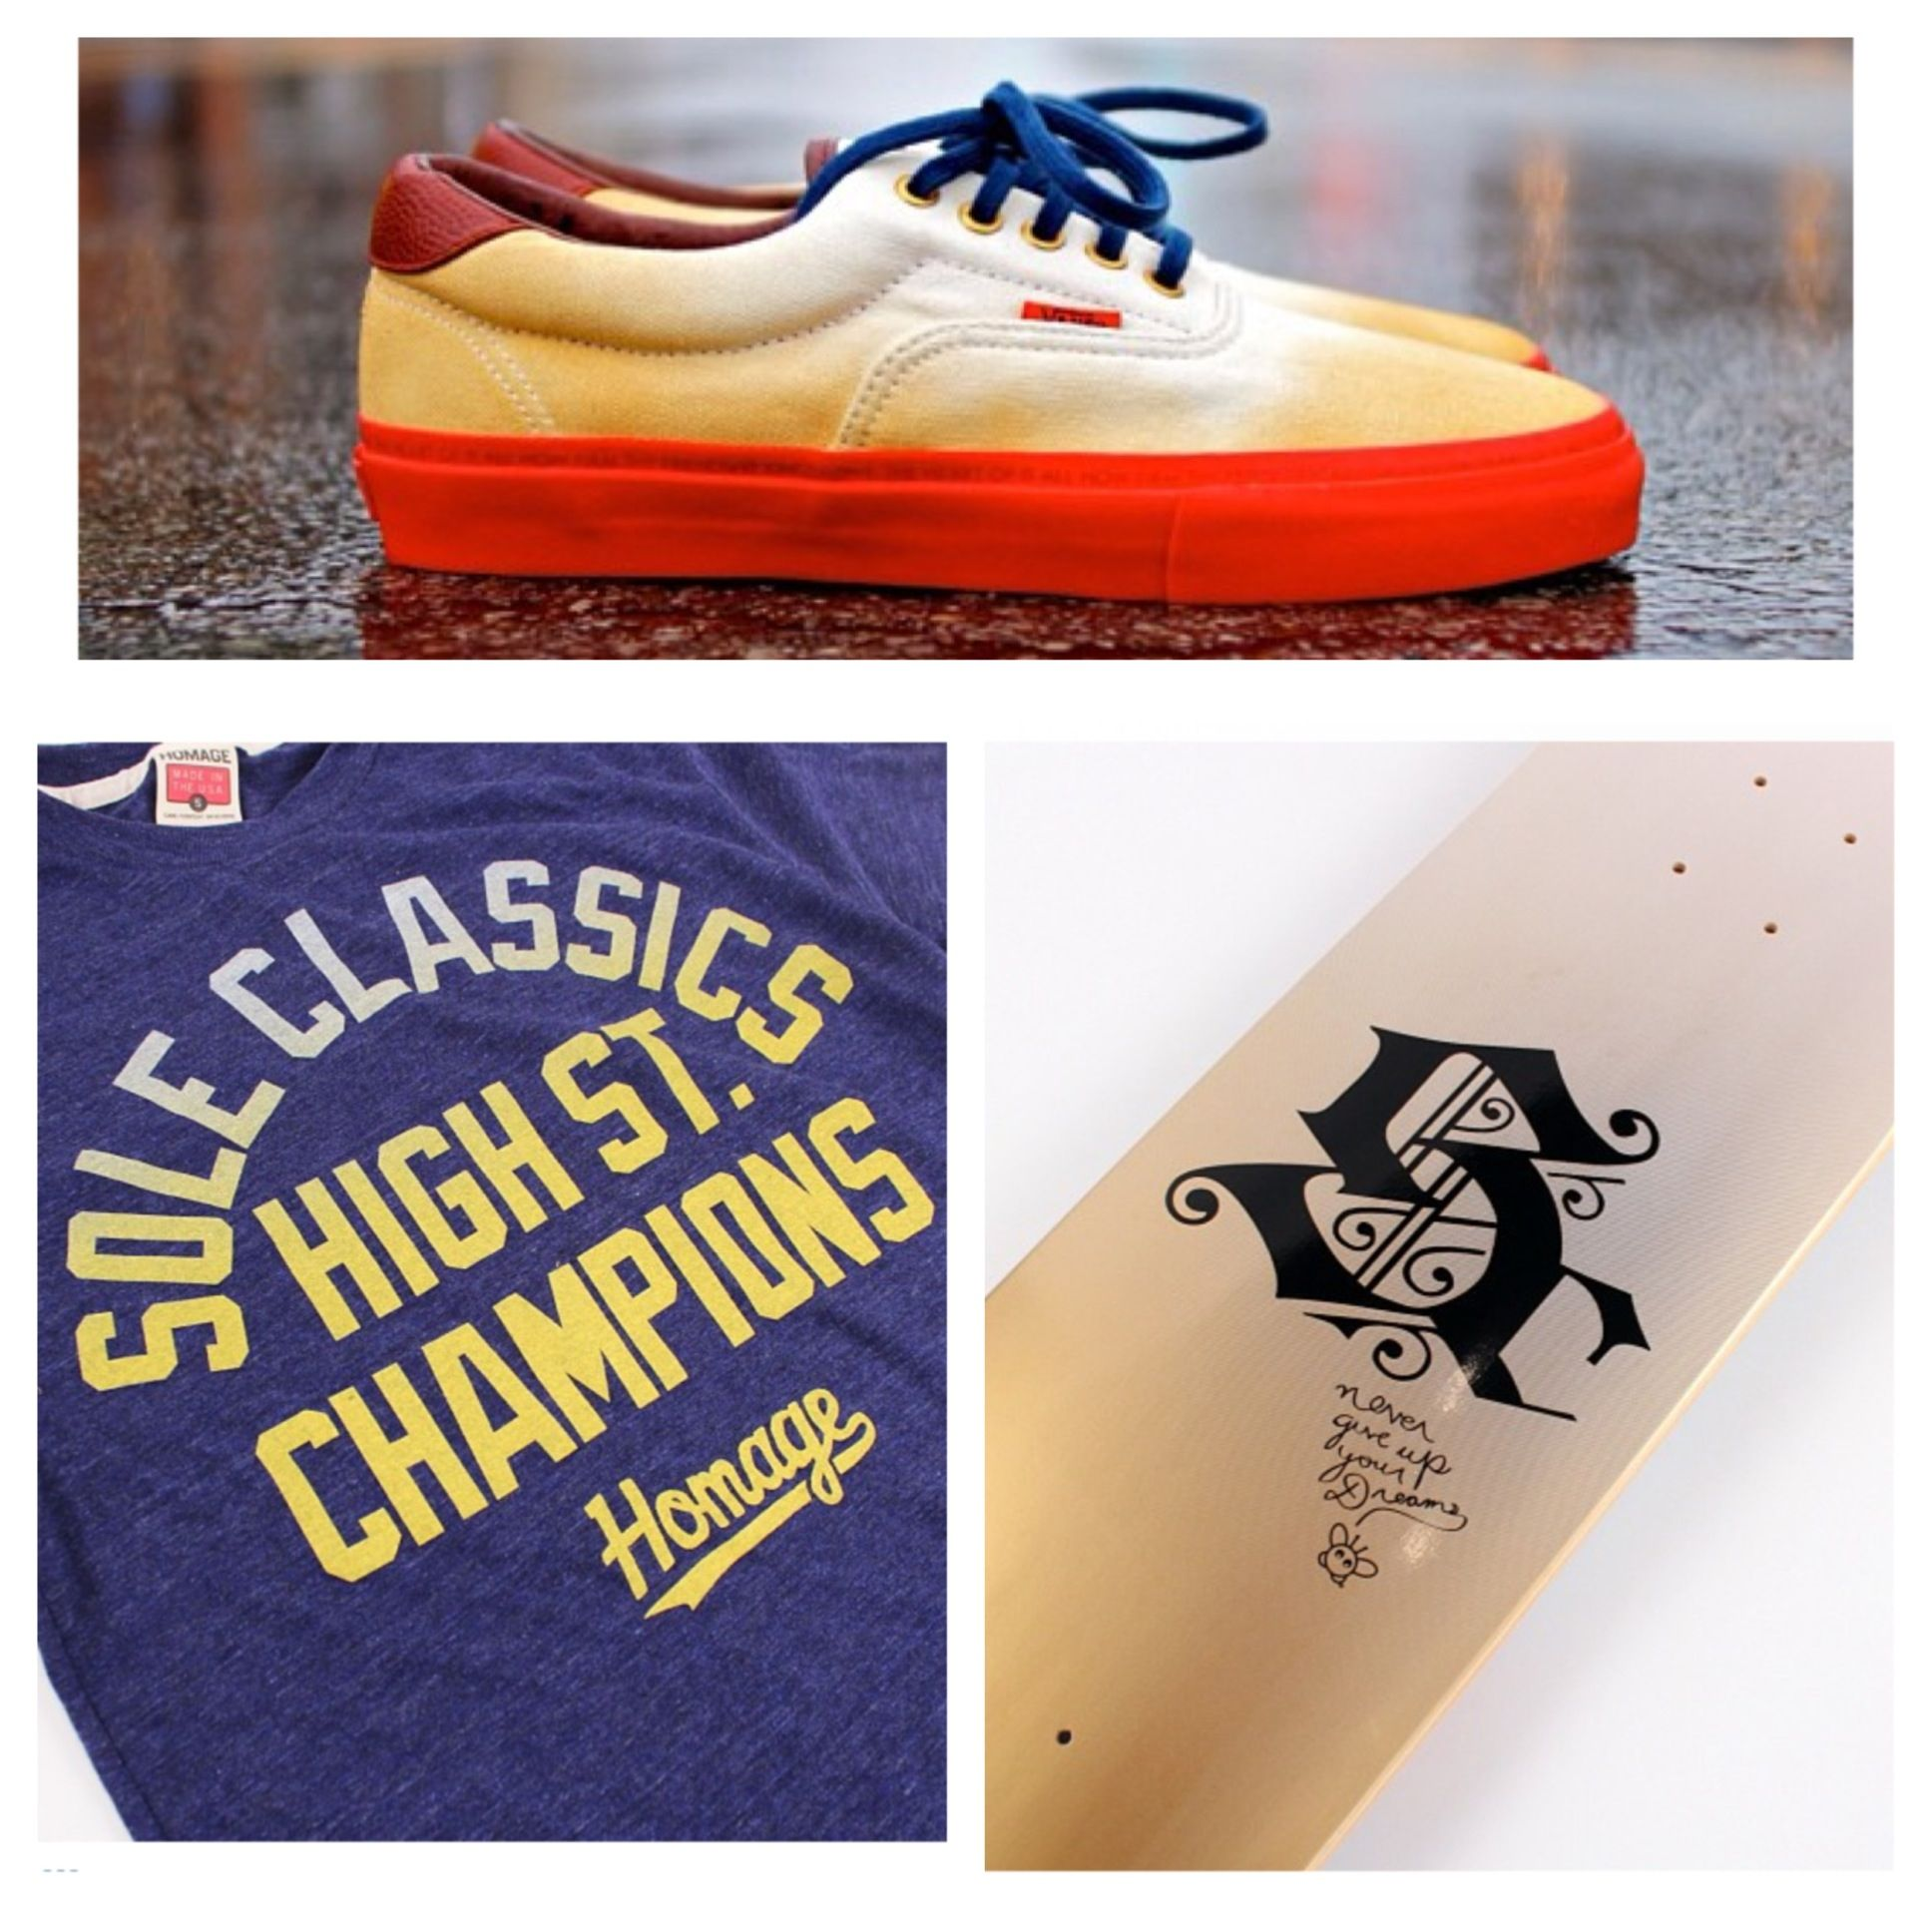 2609da6af468f6 New colabs from Sole Classics that drop on 5.25 Vans Vault x Homage x  Embassy